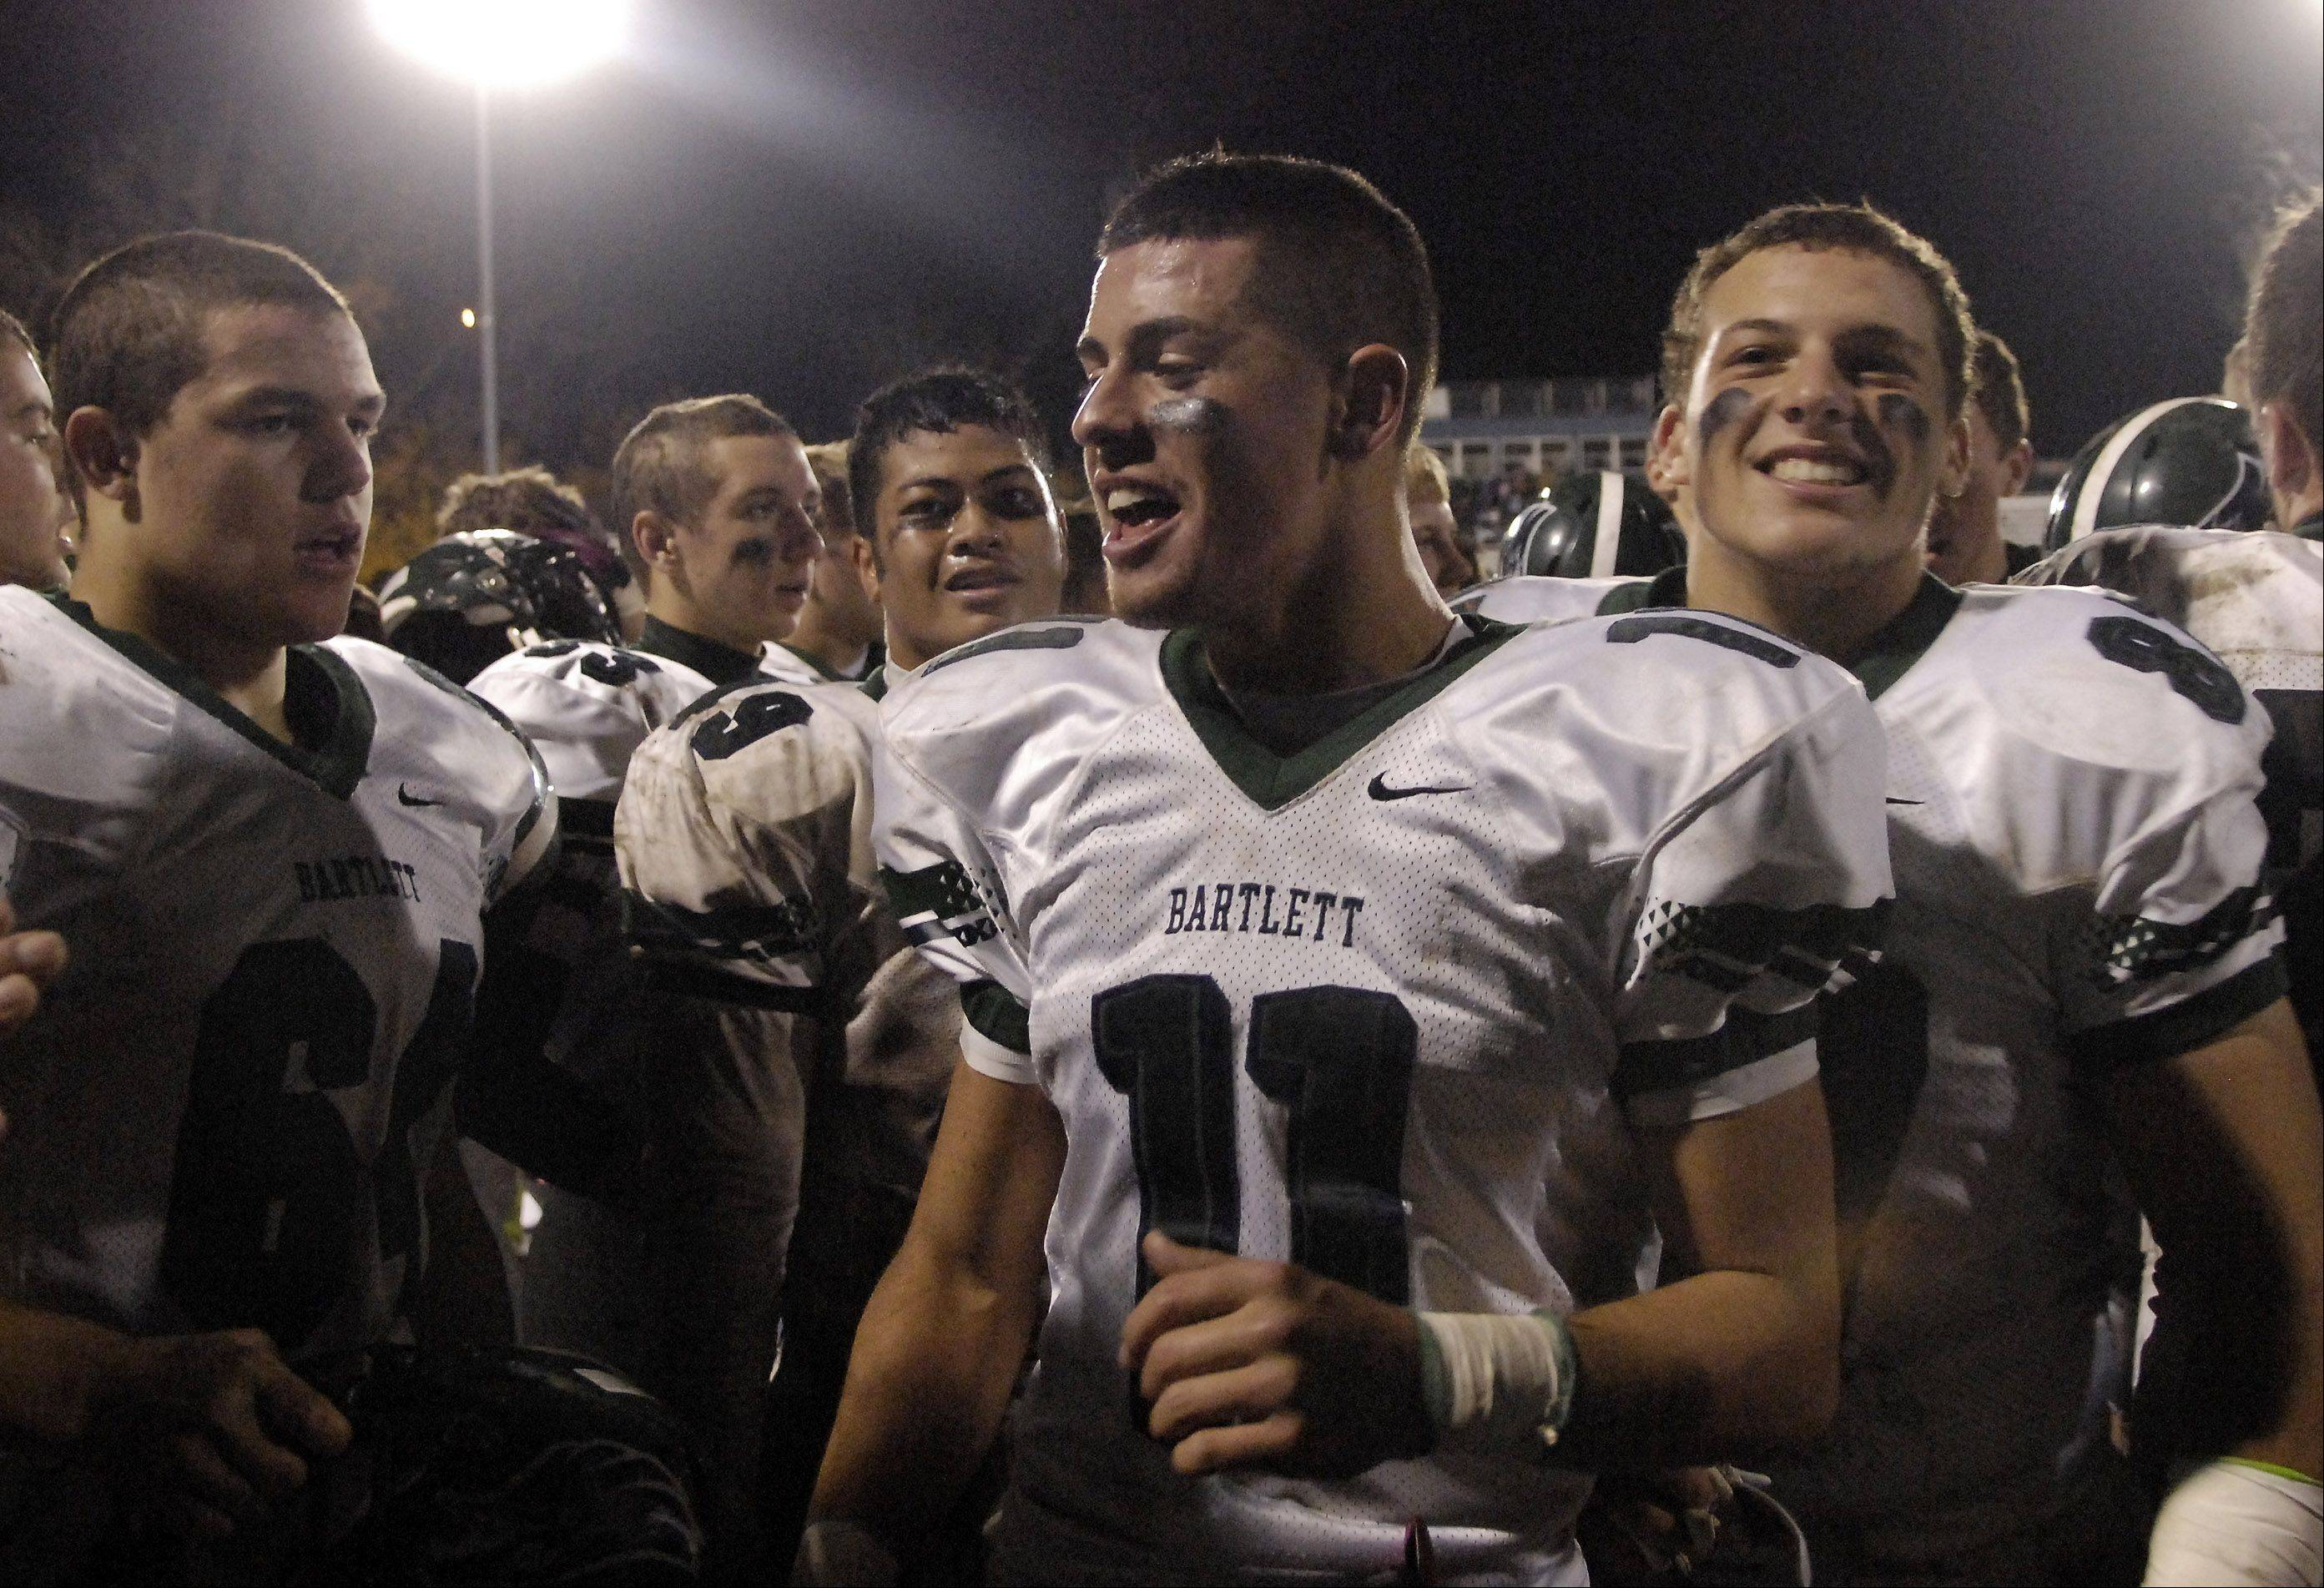 Bartlett's Kyle Garcia (11) and his teammates celebrate their win over Leyden in Northlake Friday.